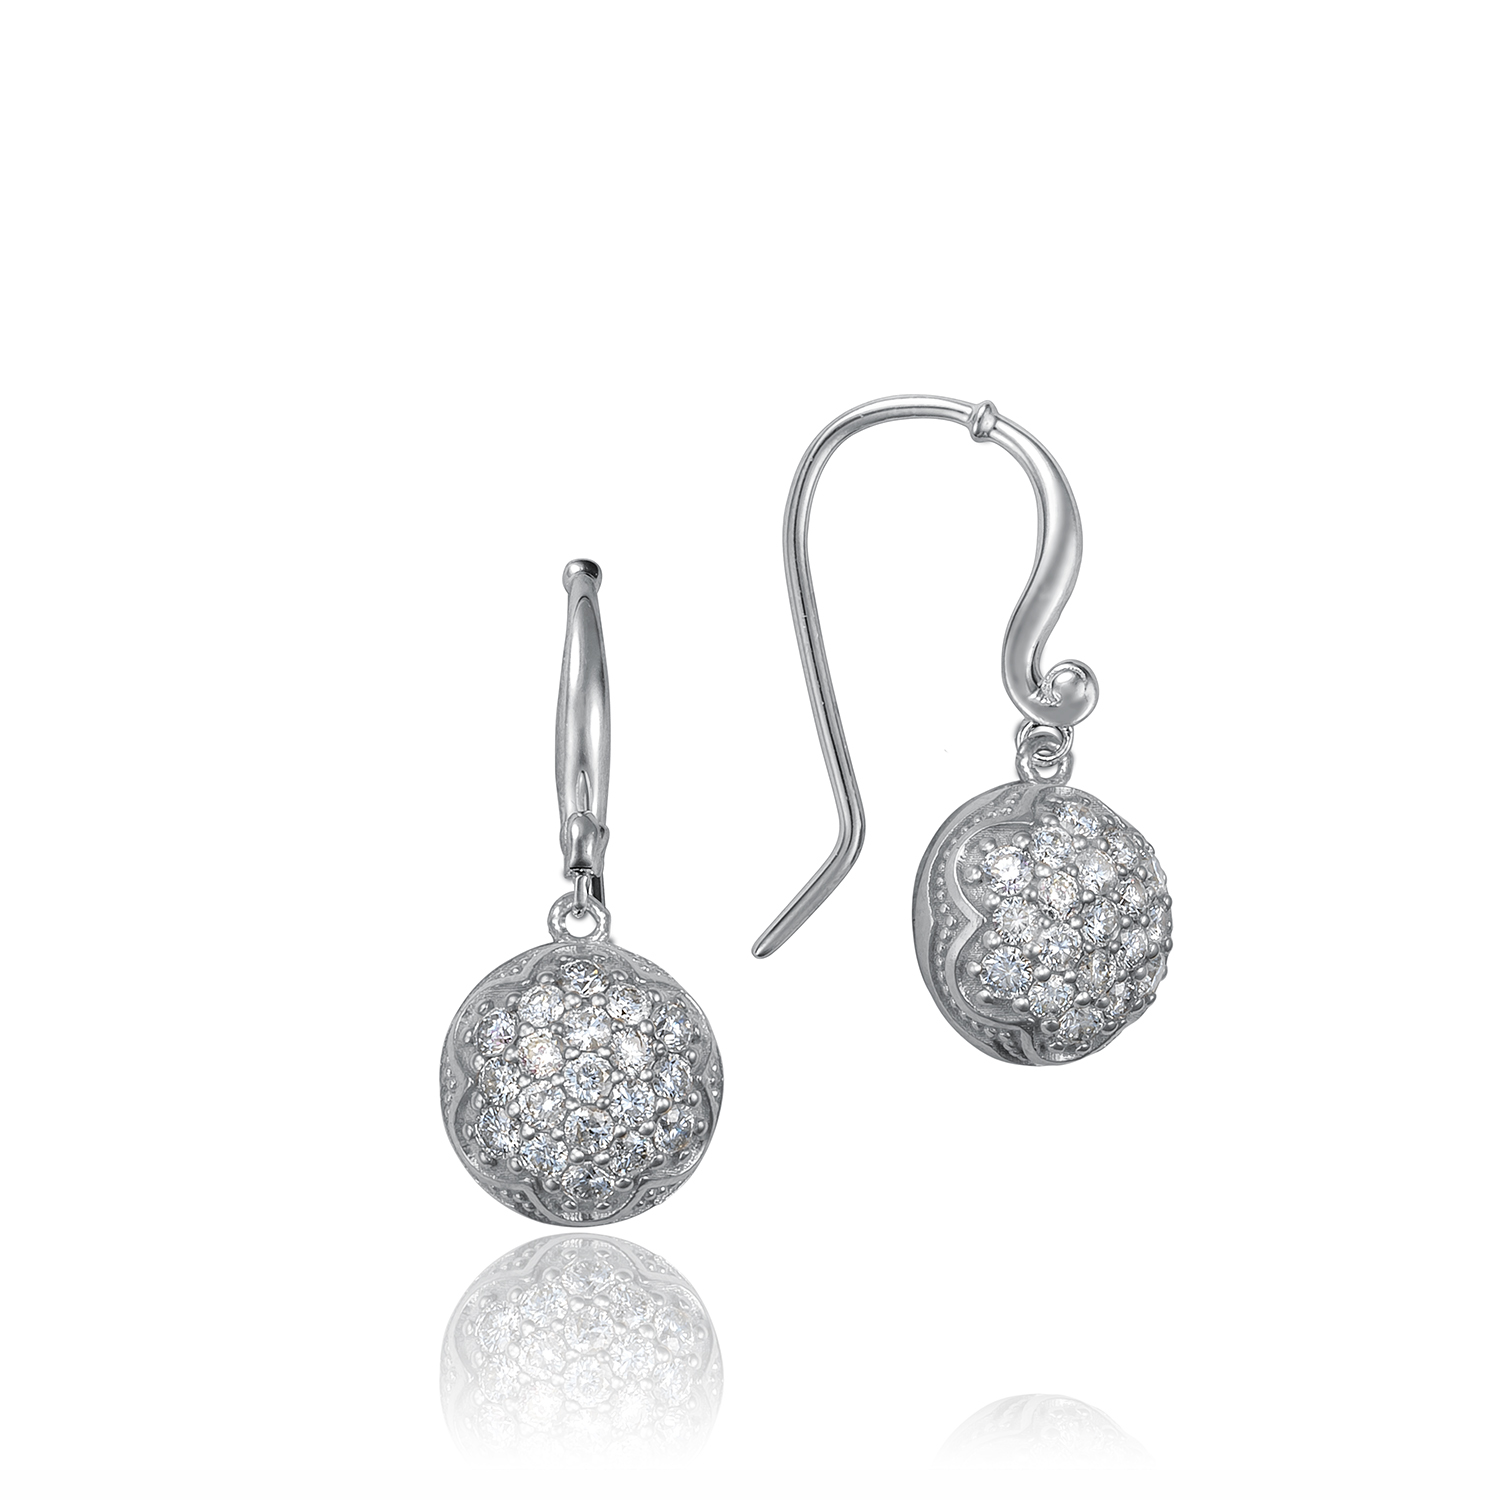 Tacori:  Sterling Silver Engraved Drop Earrings With 0.80Tw Round Diamonds Style Name: Dew Drop